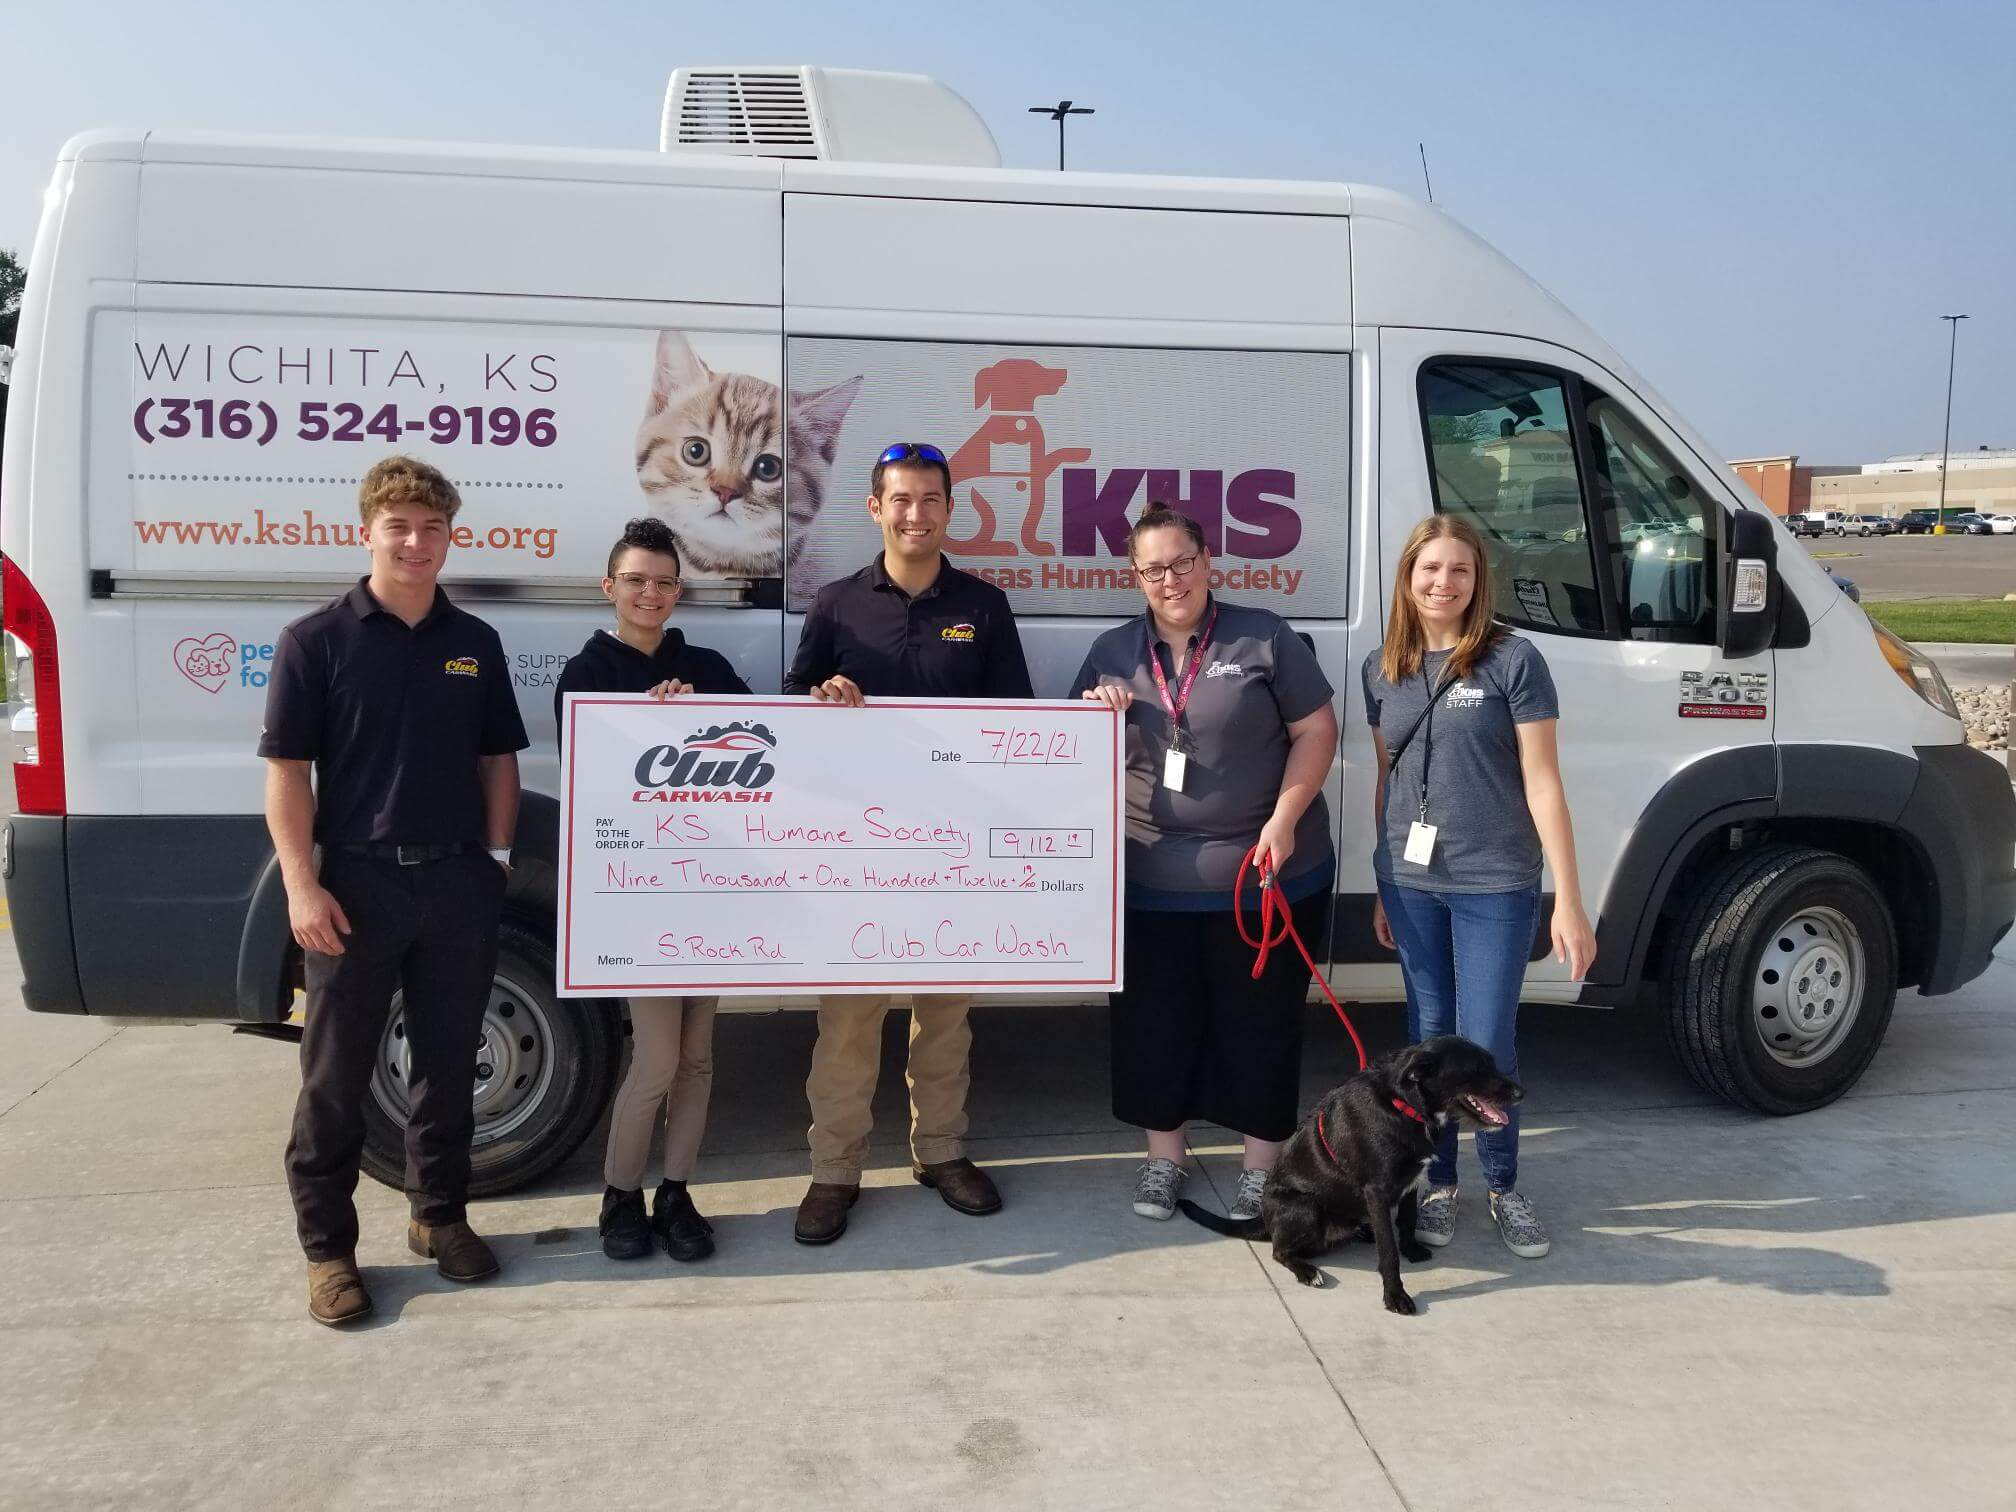 group of club car wash employees with kansas humane society representatives and dog with a check